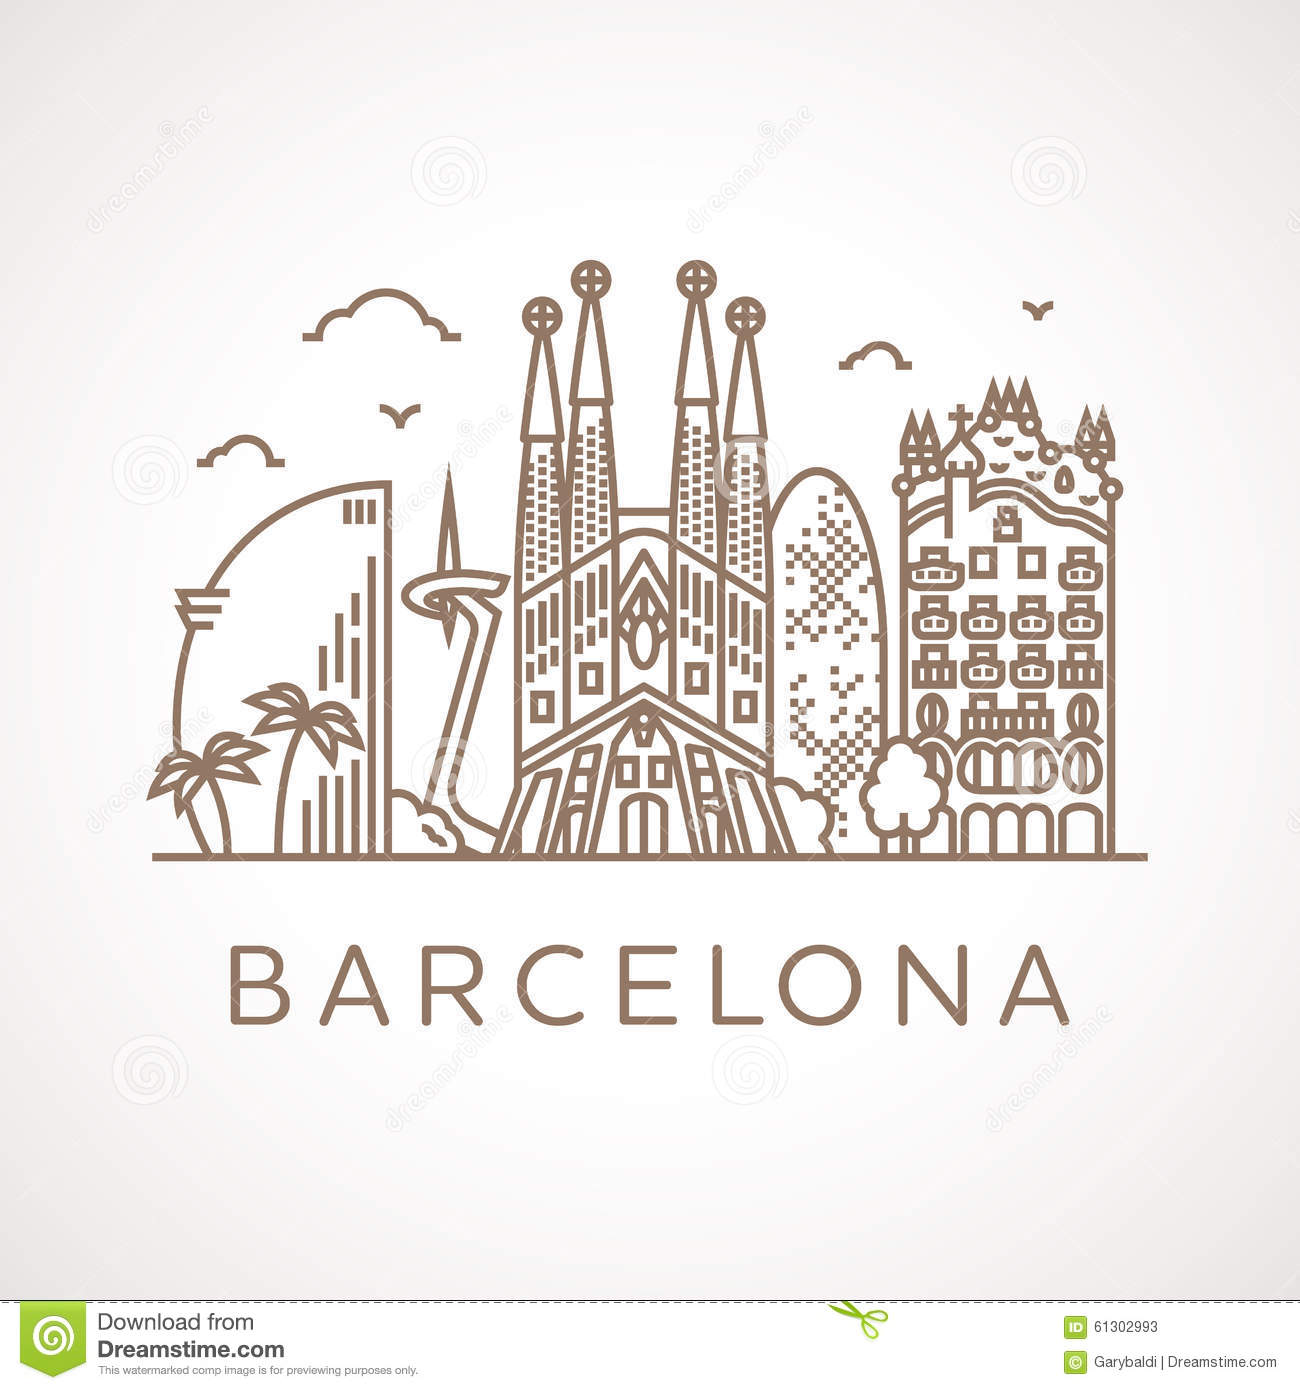 Line Art Design Illustration : Trendy line art illustration of barcelona stock